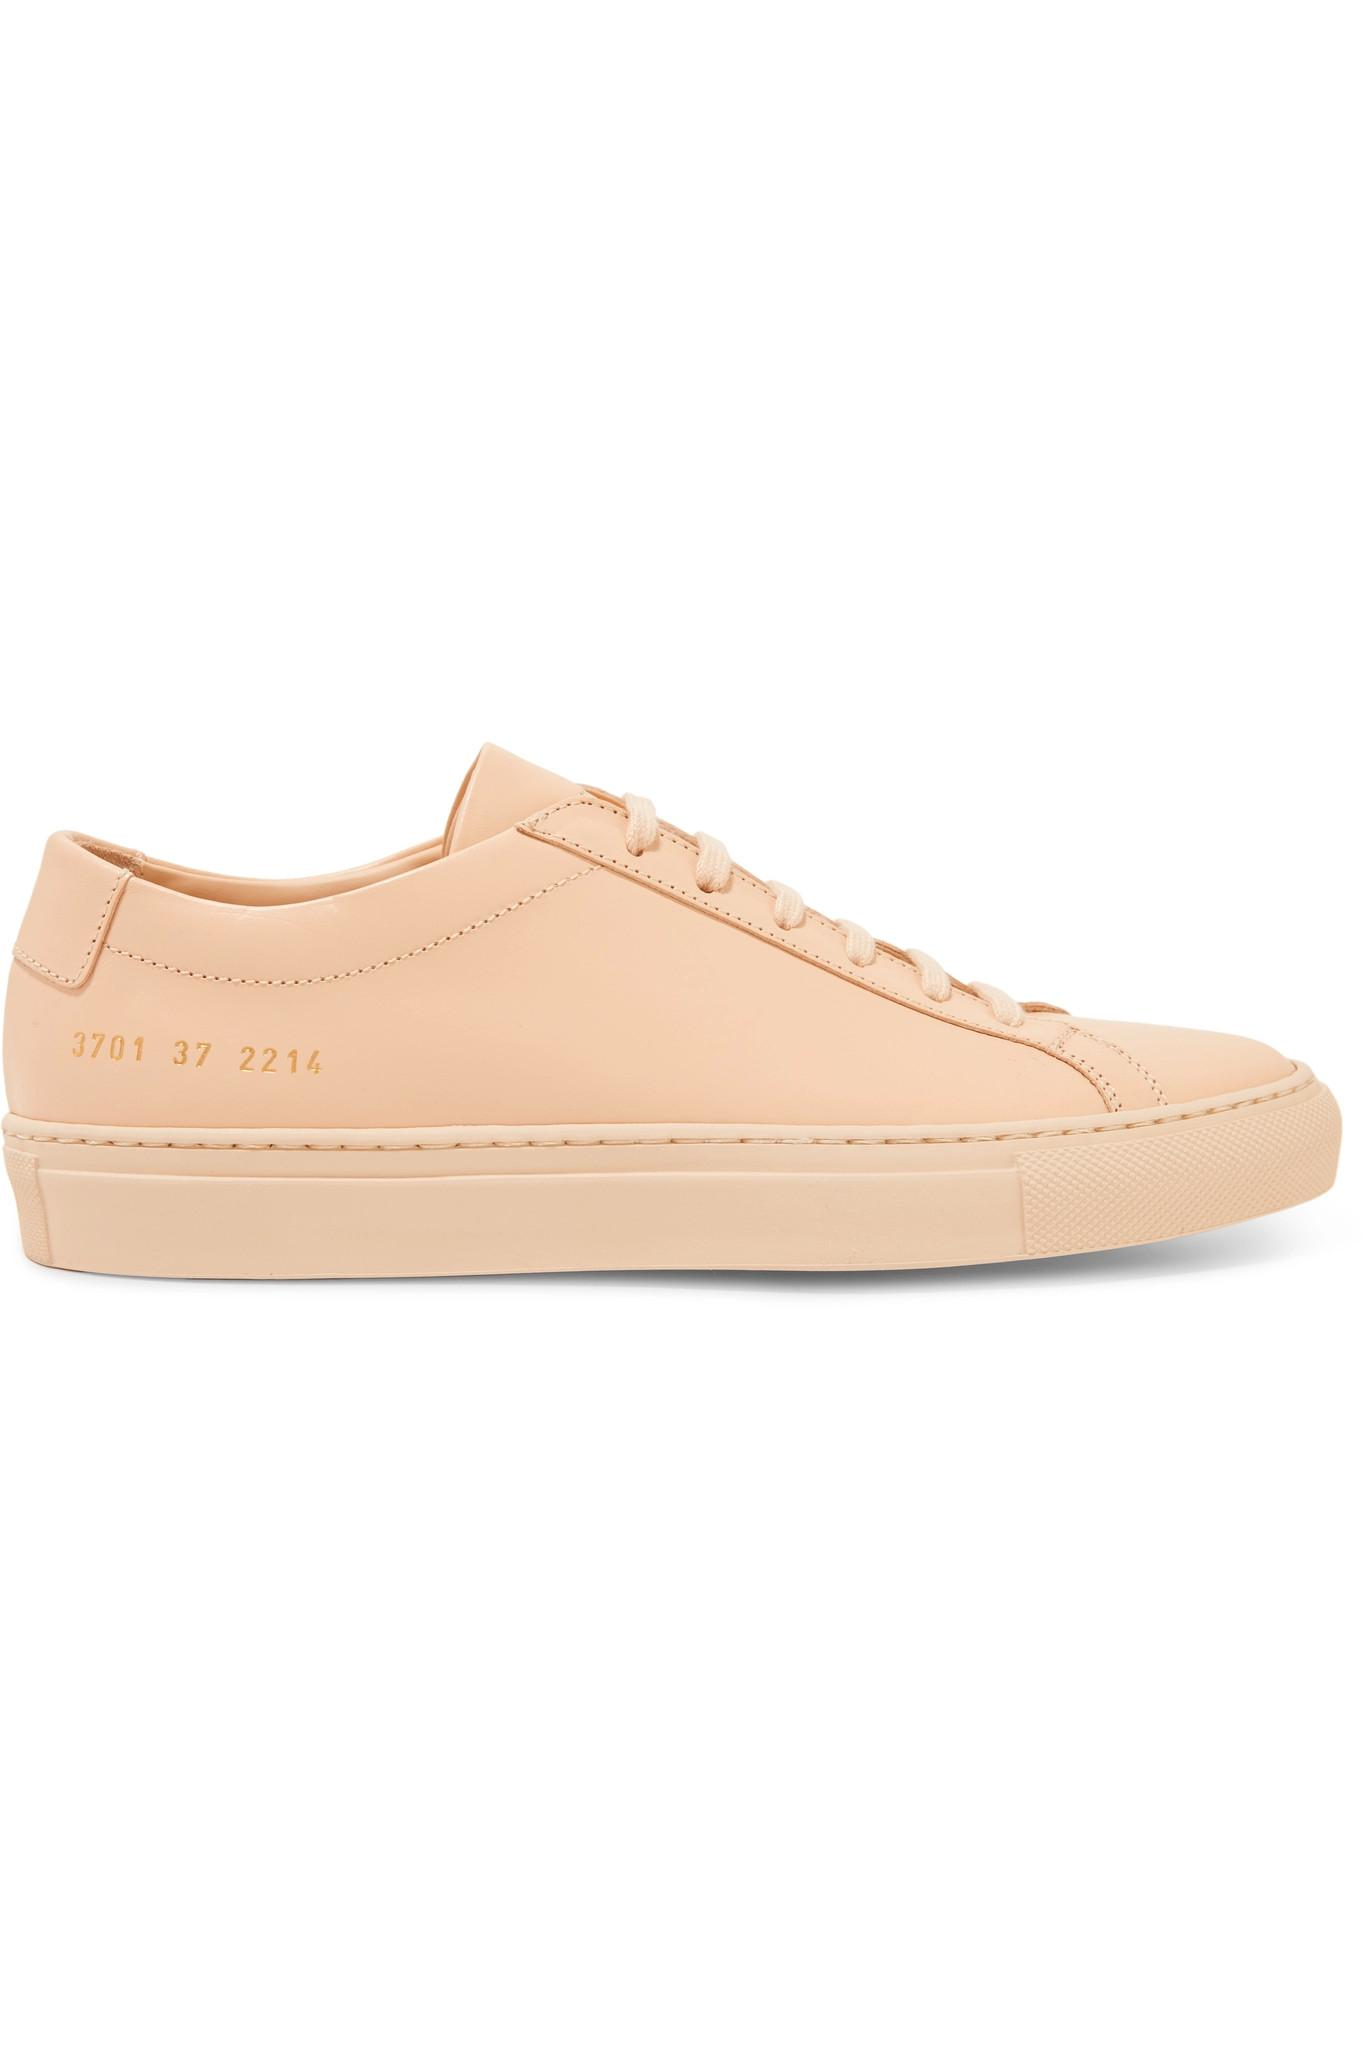 common projects sneakers sale 28 images common projects sneakers sale 28 images common. Black Bedroom Furniture Sets. Home Design Ideas